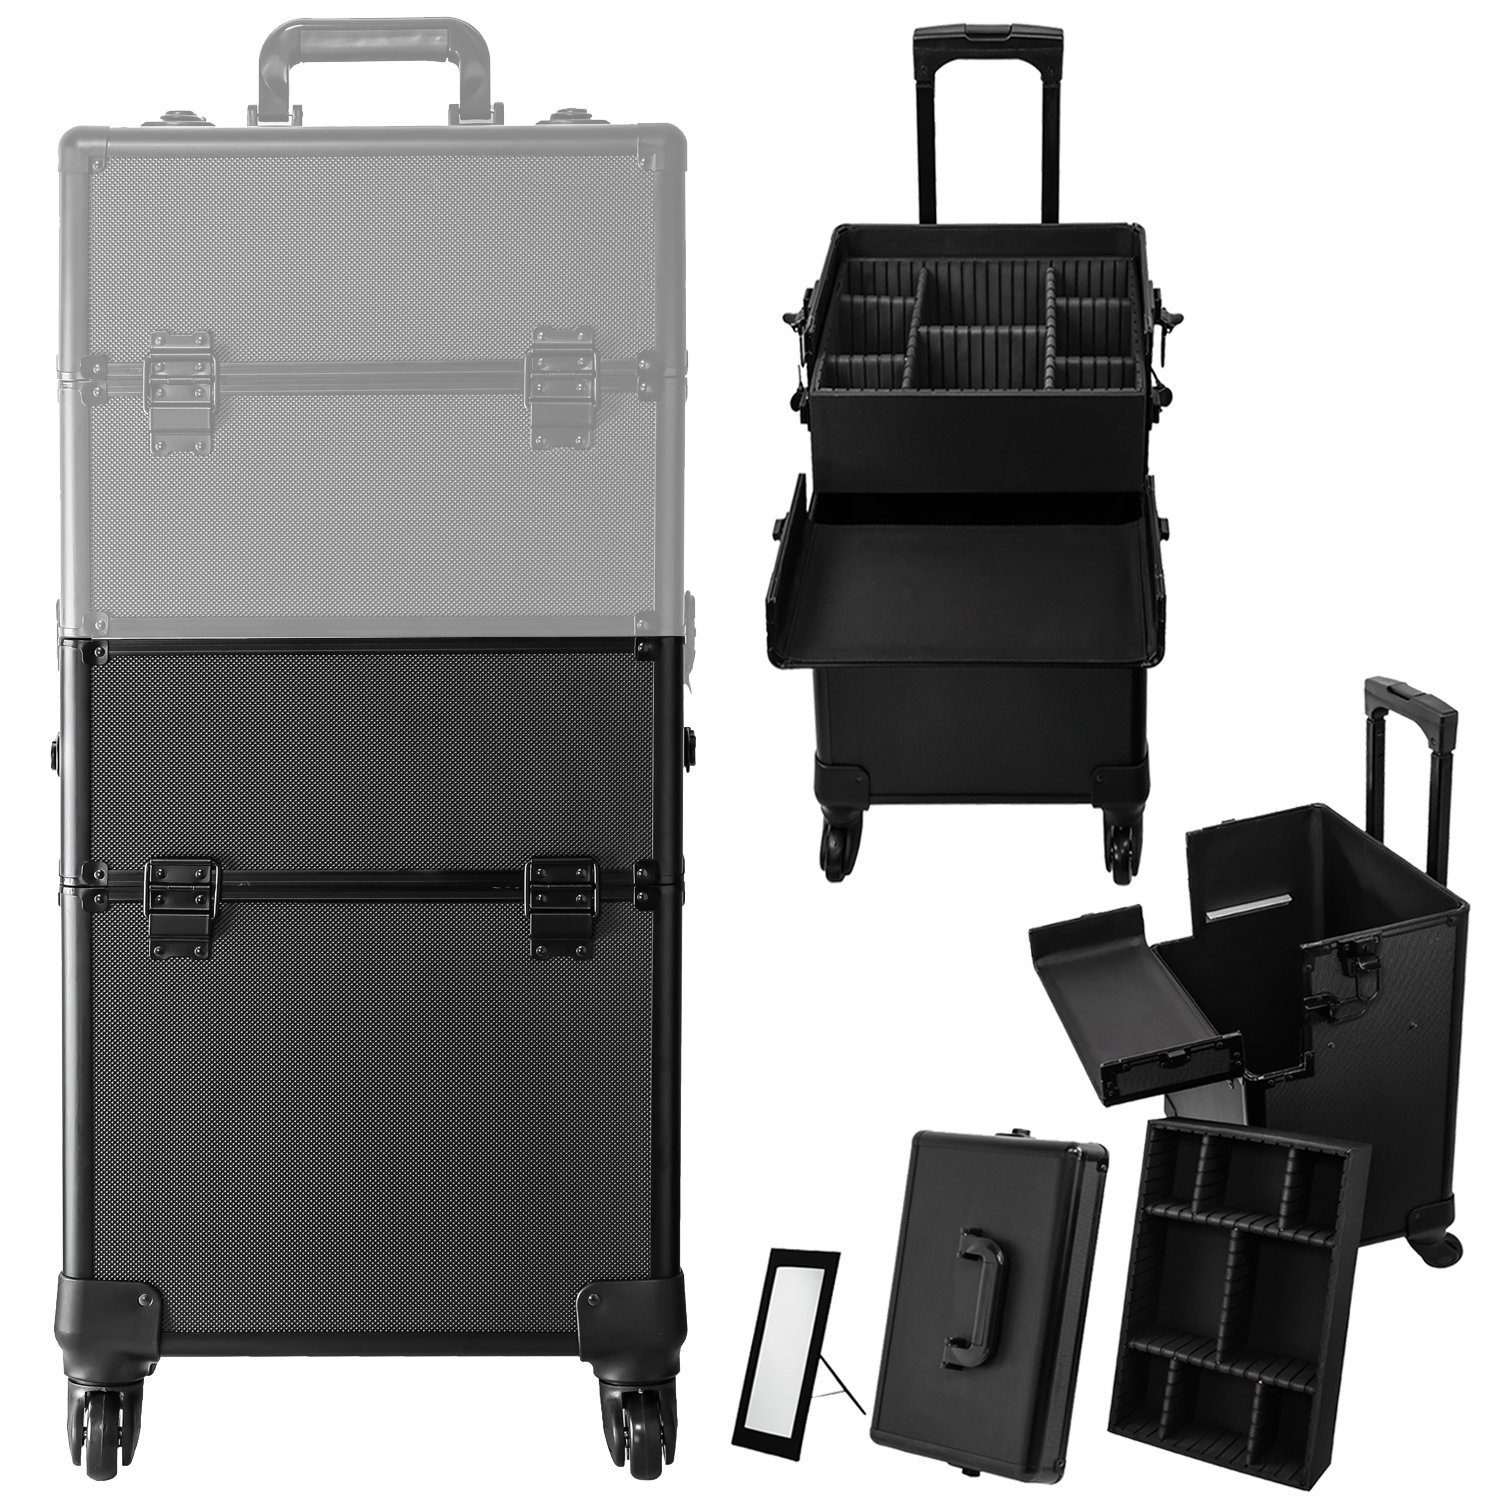 Koval Inc. 4-wheel Rolling 2in1 Makeup Train Cosmetic Case Black by KOVAL INC. (Image #2)